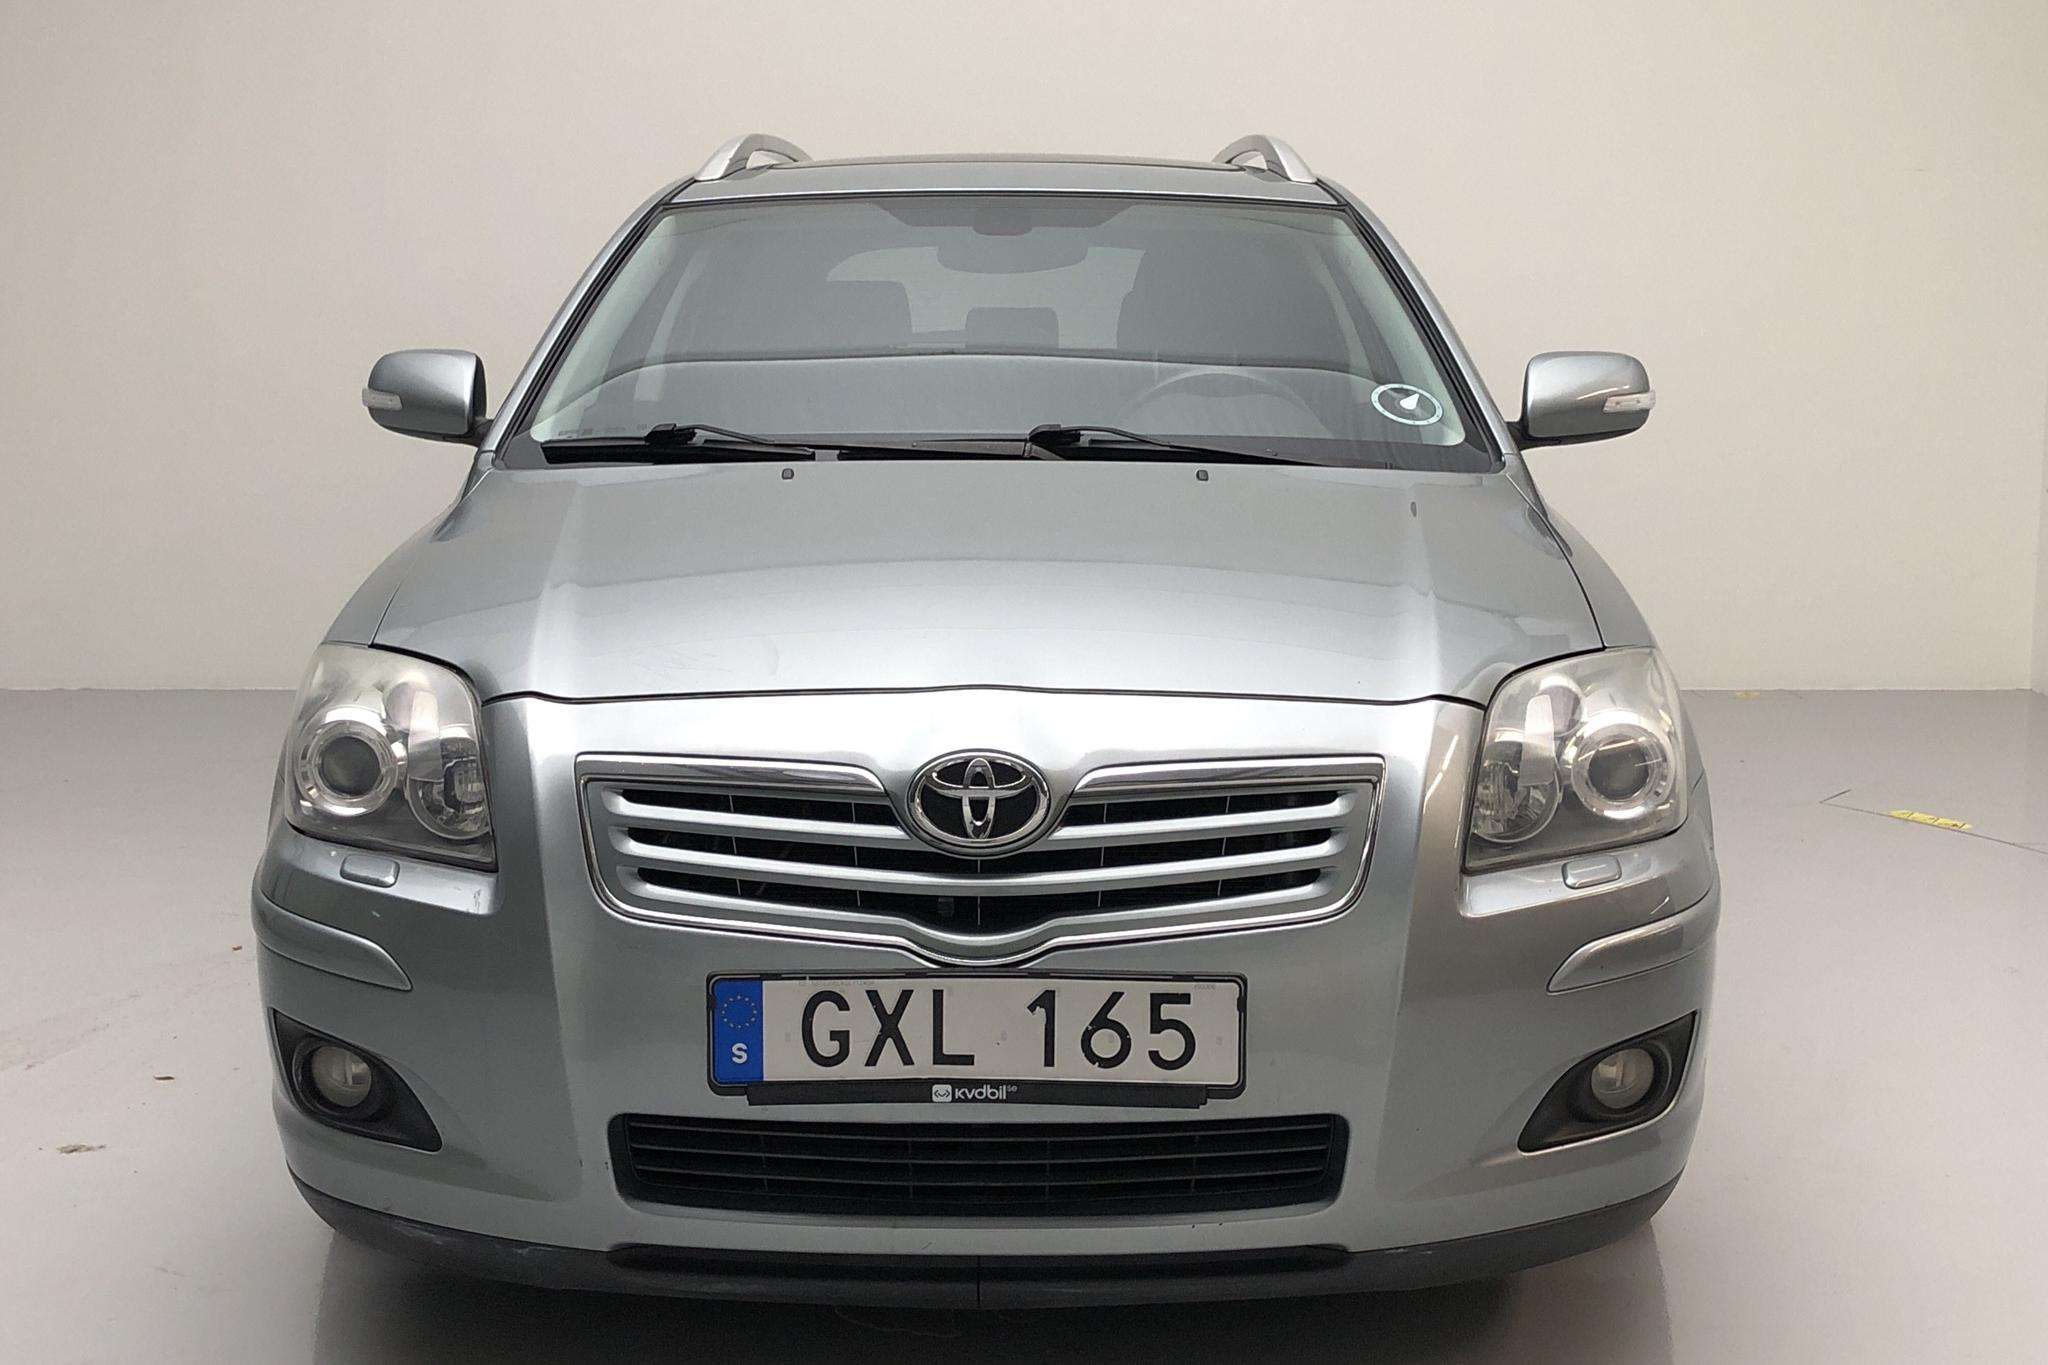 Toyota Avensis 2.0 Kombi (147hk) - 197 180 km - Manual - gray - 2008